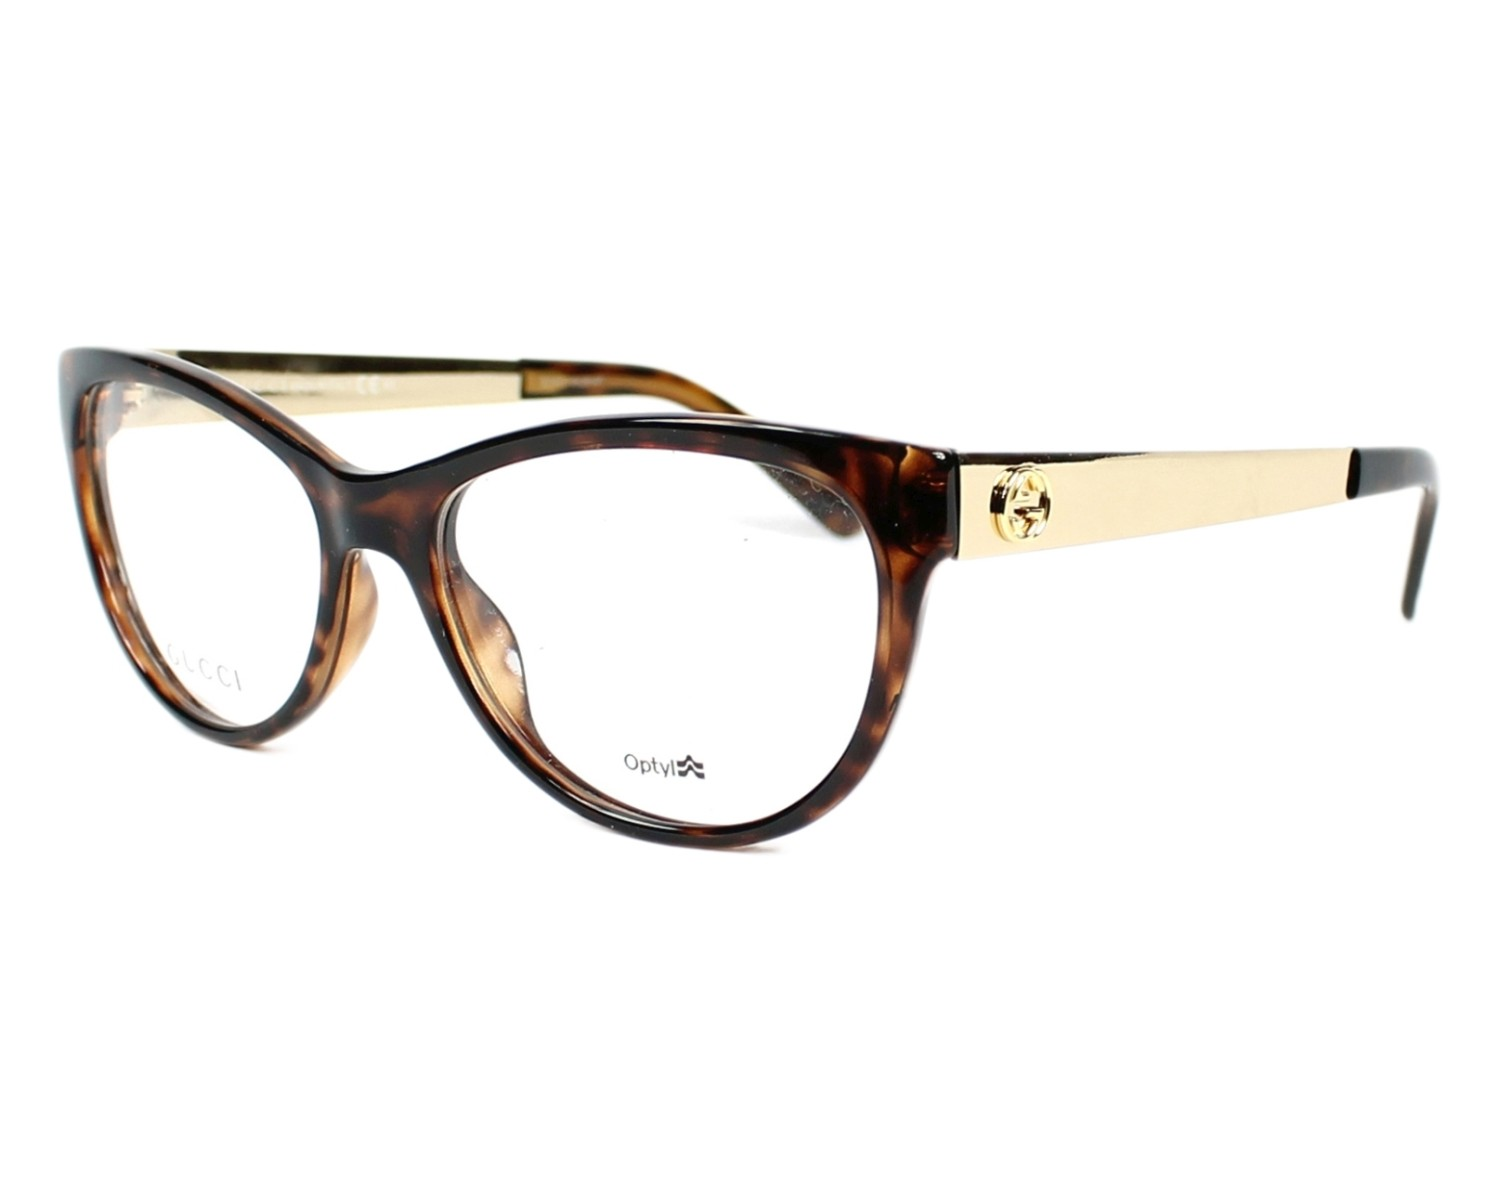 order your gucci eyeglasses gg 3742 vjy 53 today